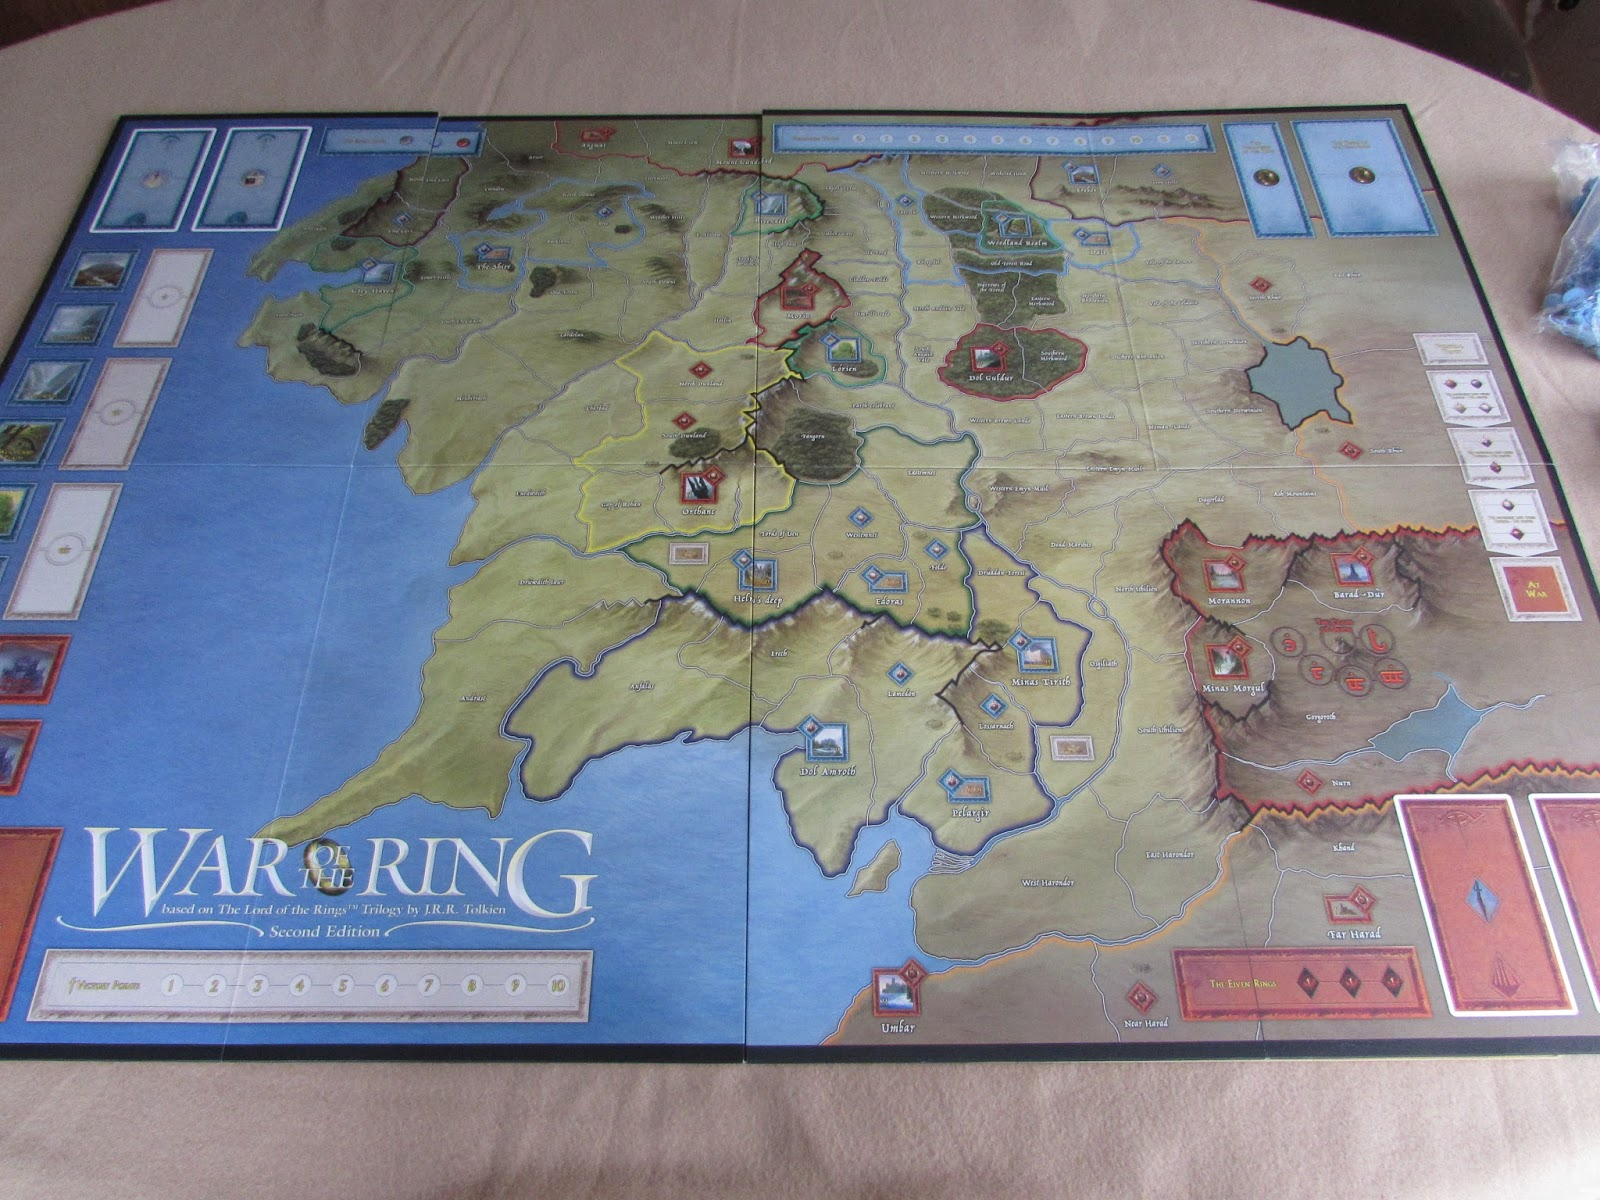 War of the ring 2nd edition a wargamers needful things i suspect that the map is the key aspect that will draw conflicting opinions between this second edition and the first edition gumiabroncs Choice Image